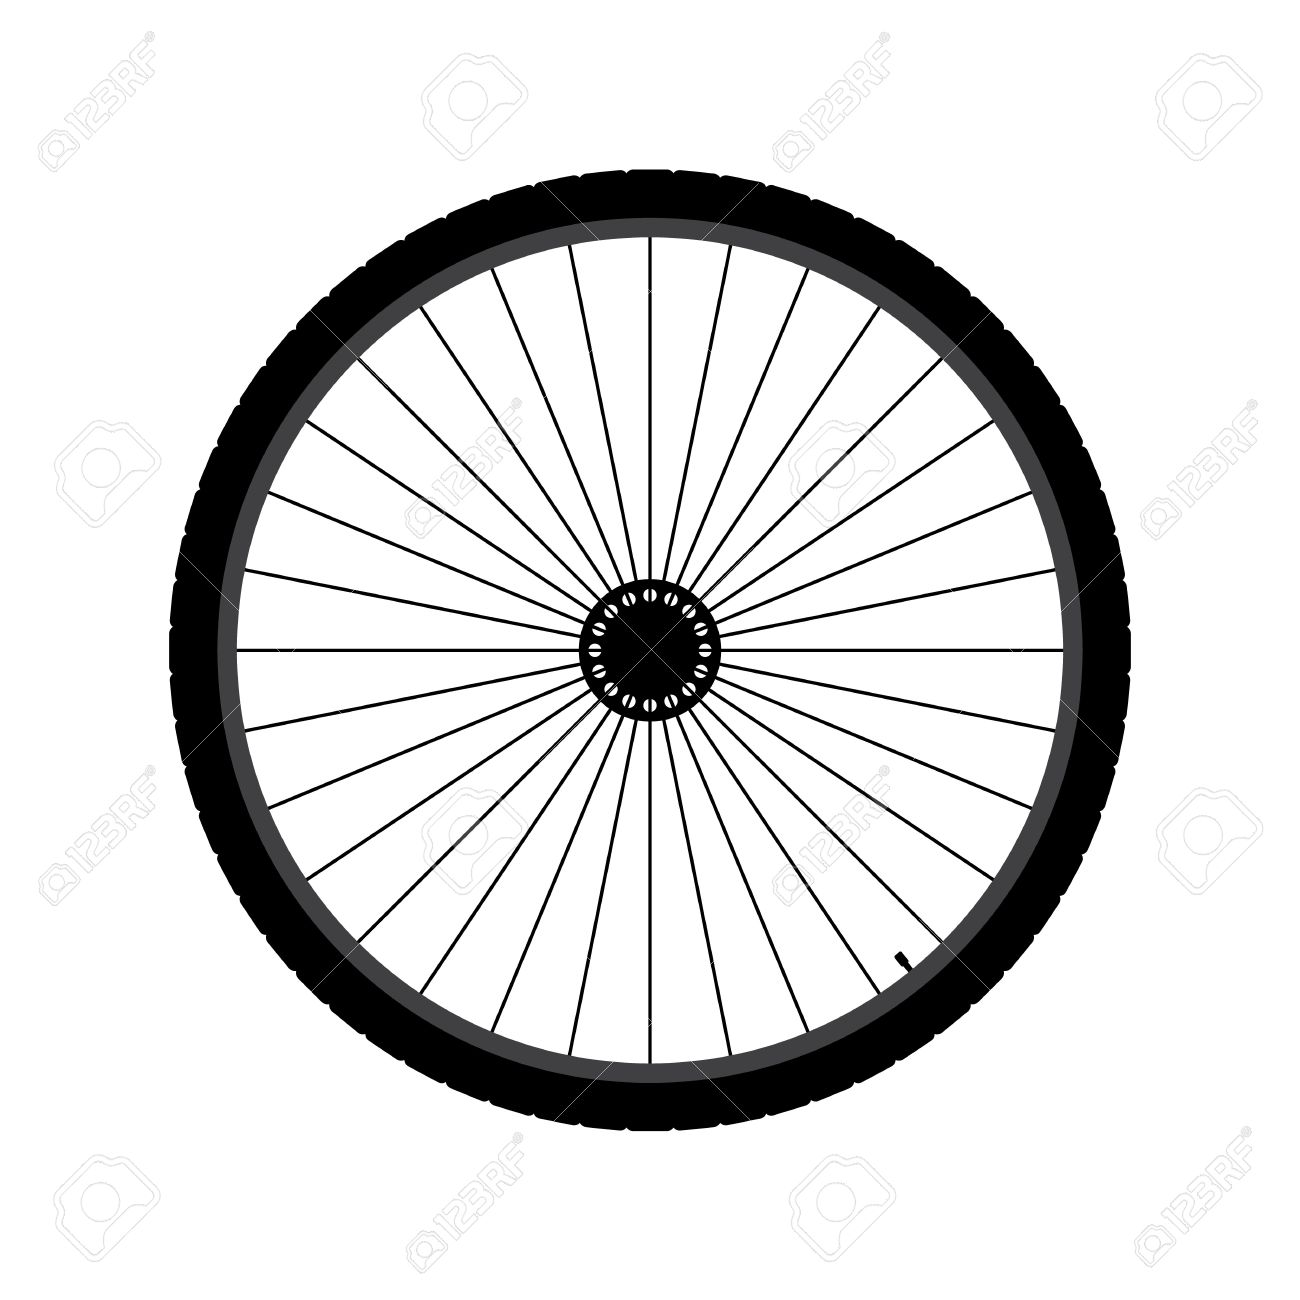 Bike wheels clipart graphic black and white stock Collection of 14 free Wheel clipart bycicle bill clipart dollar sign ... graphic black and white stock